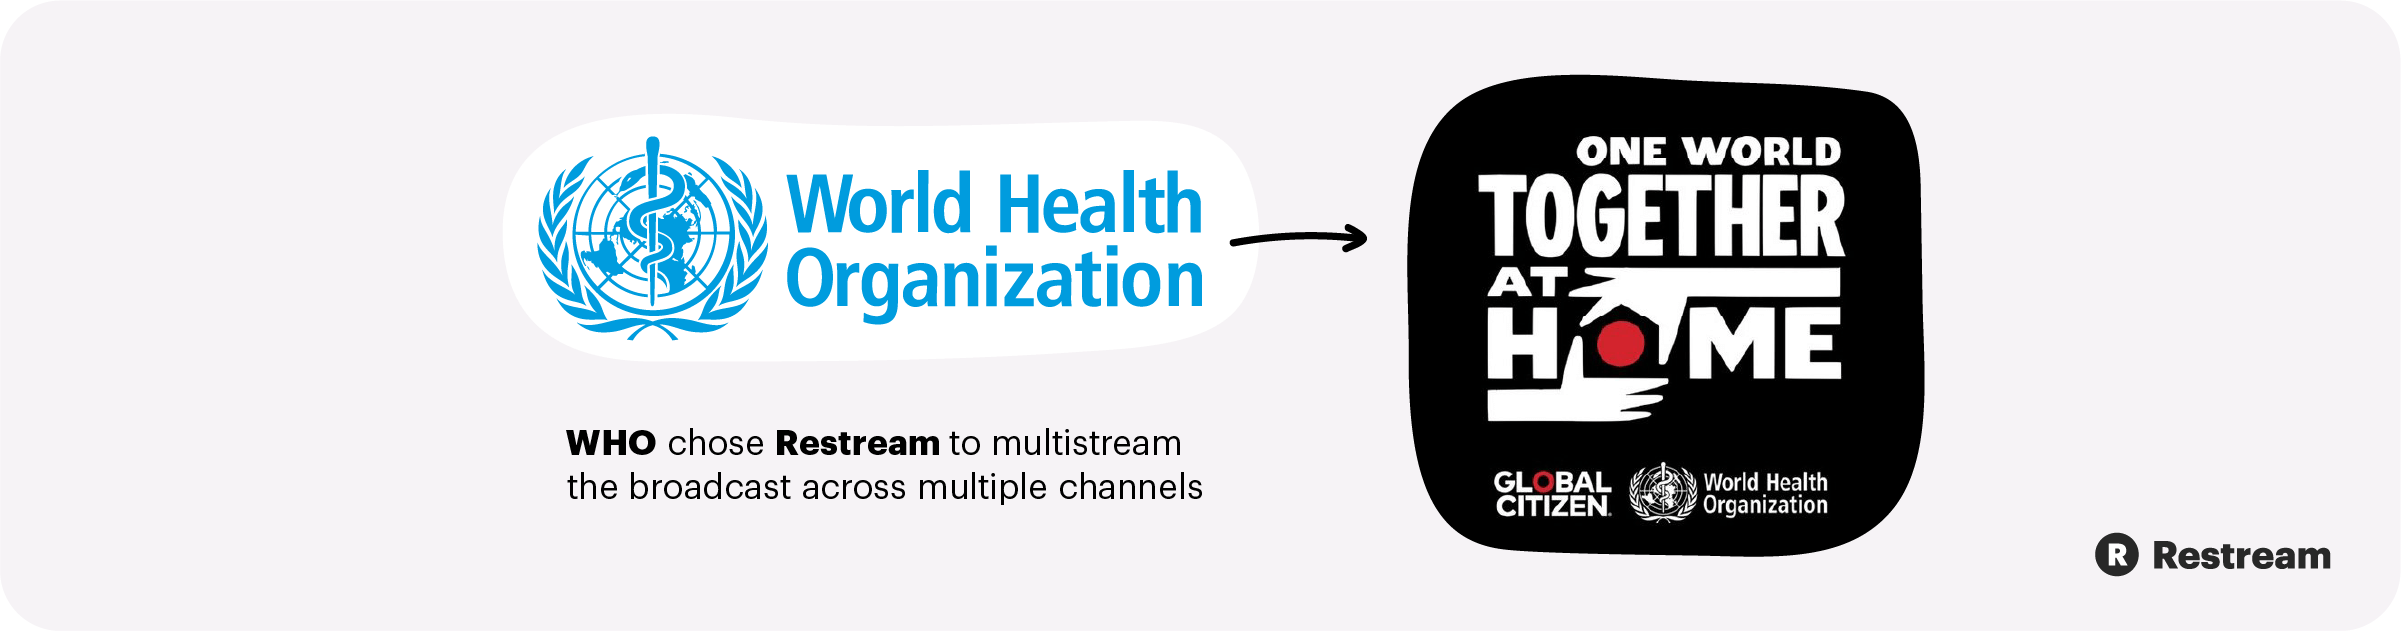 WHO chose Restream One World: Together at Home